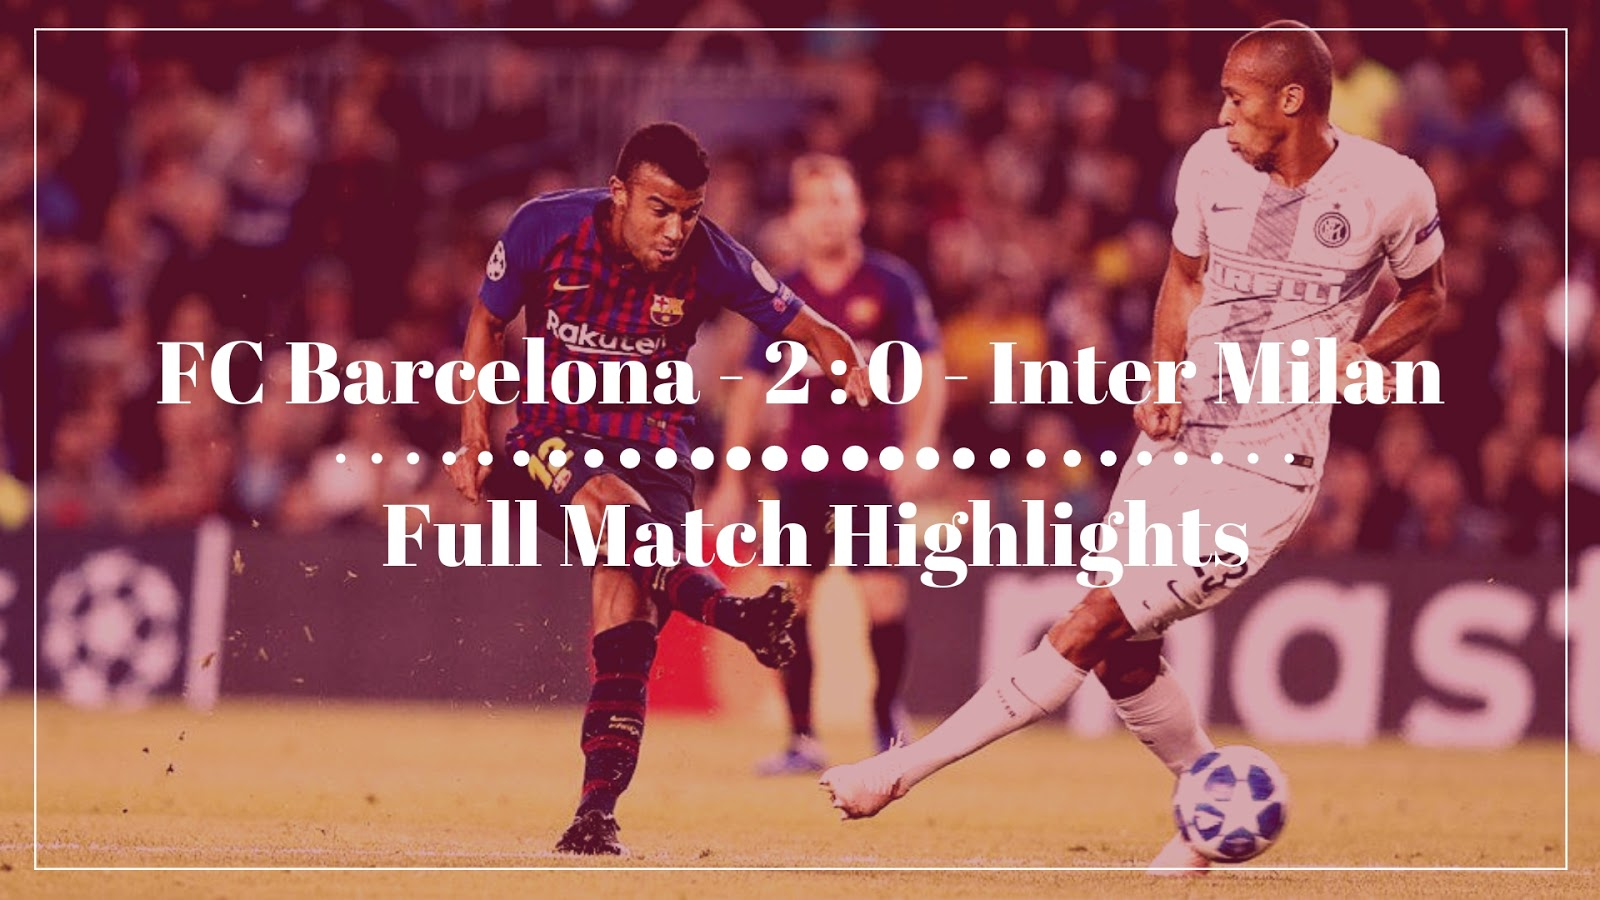 FC Barcelona Vs Inter Milan Match Highlights | Barca Match Videos #Barca #FCBarcelona